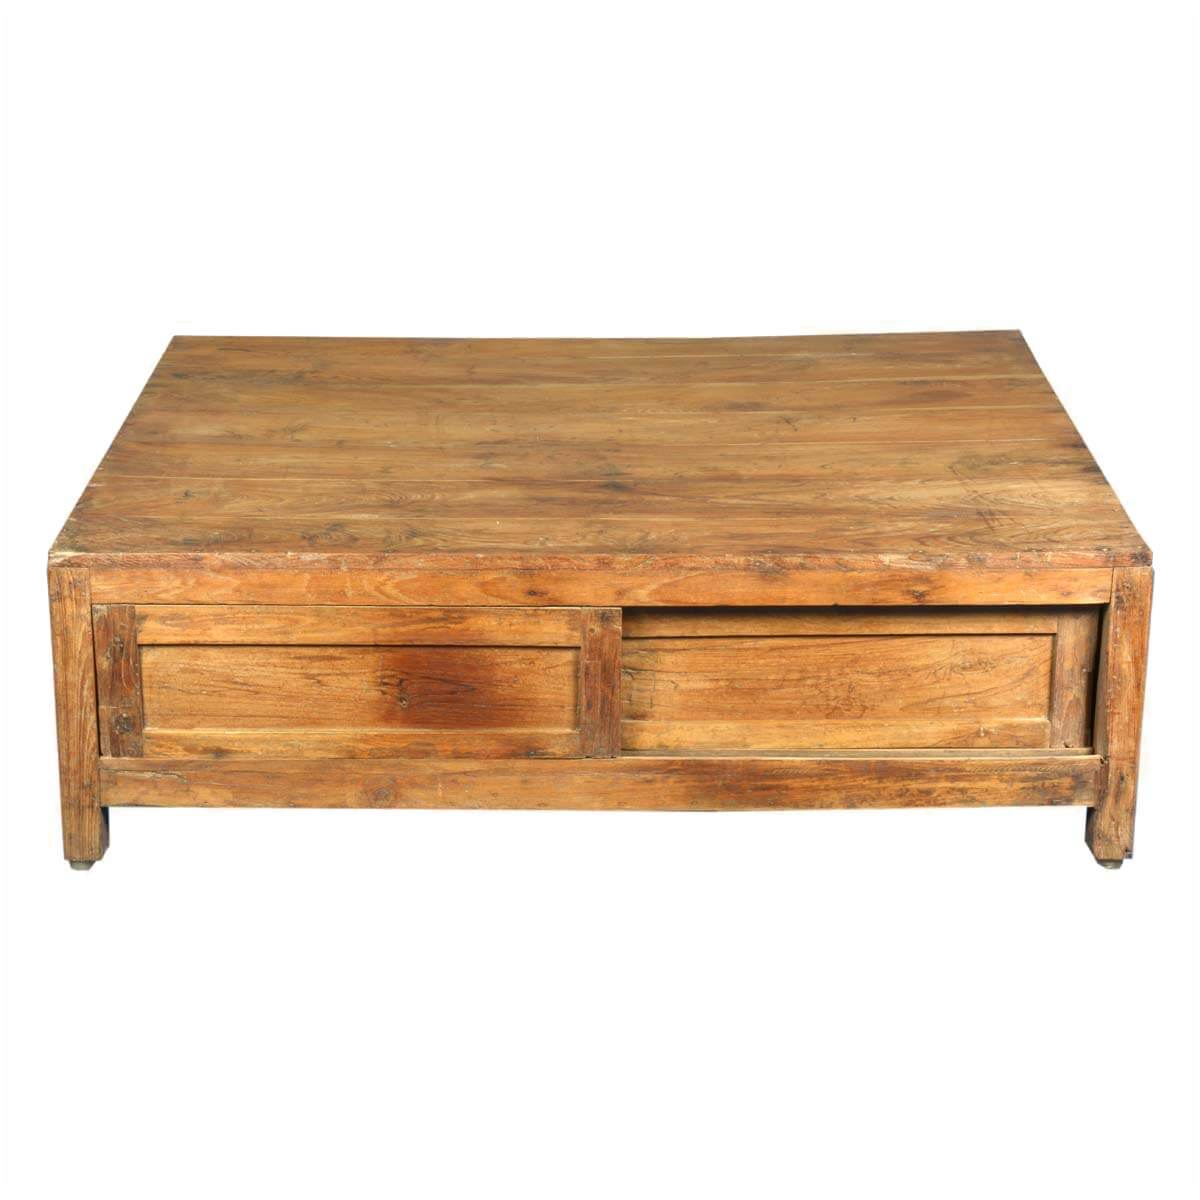 Handmade solid teak wood large coffee table with storage for Large wooden coffee tables